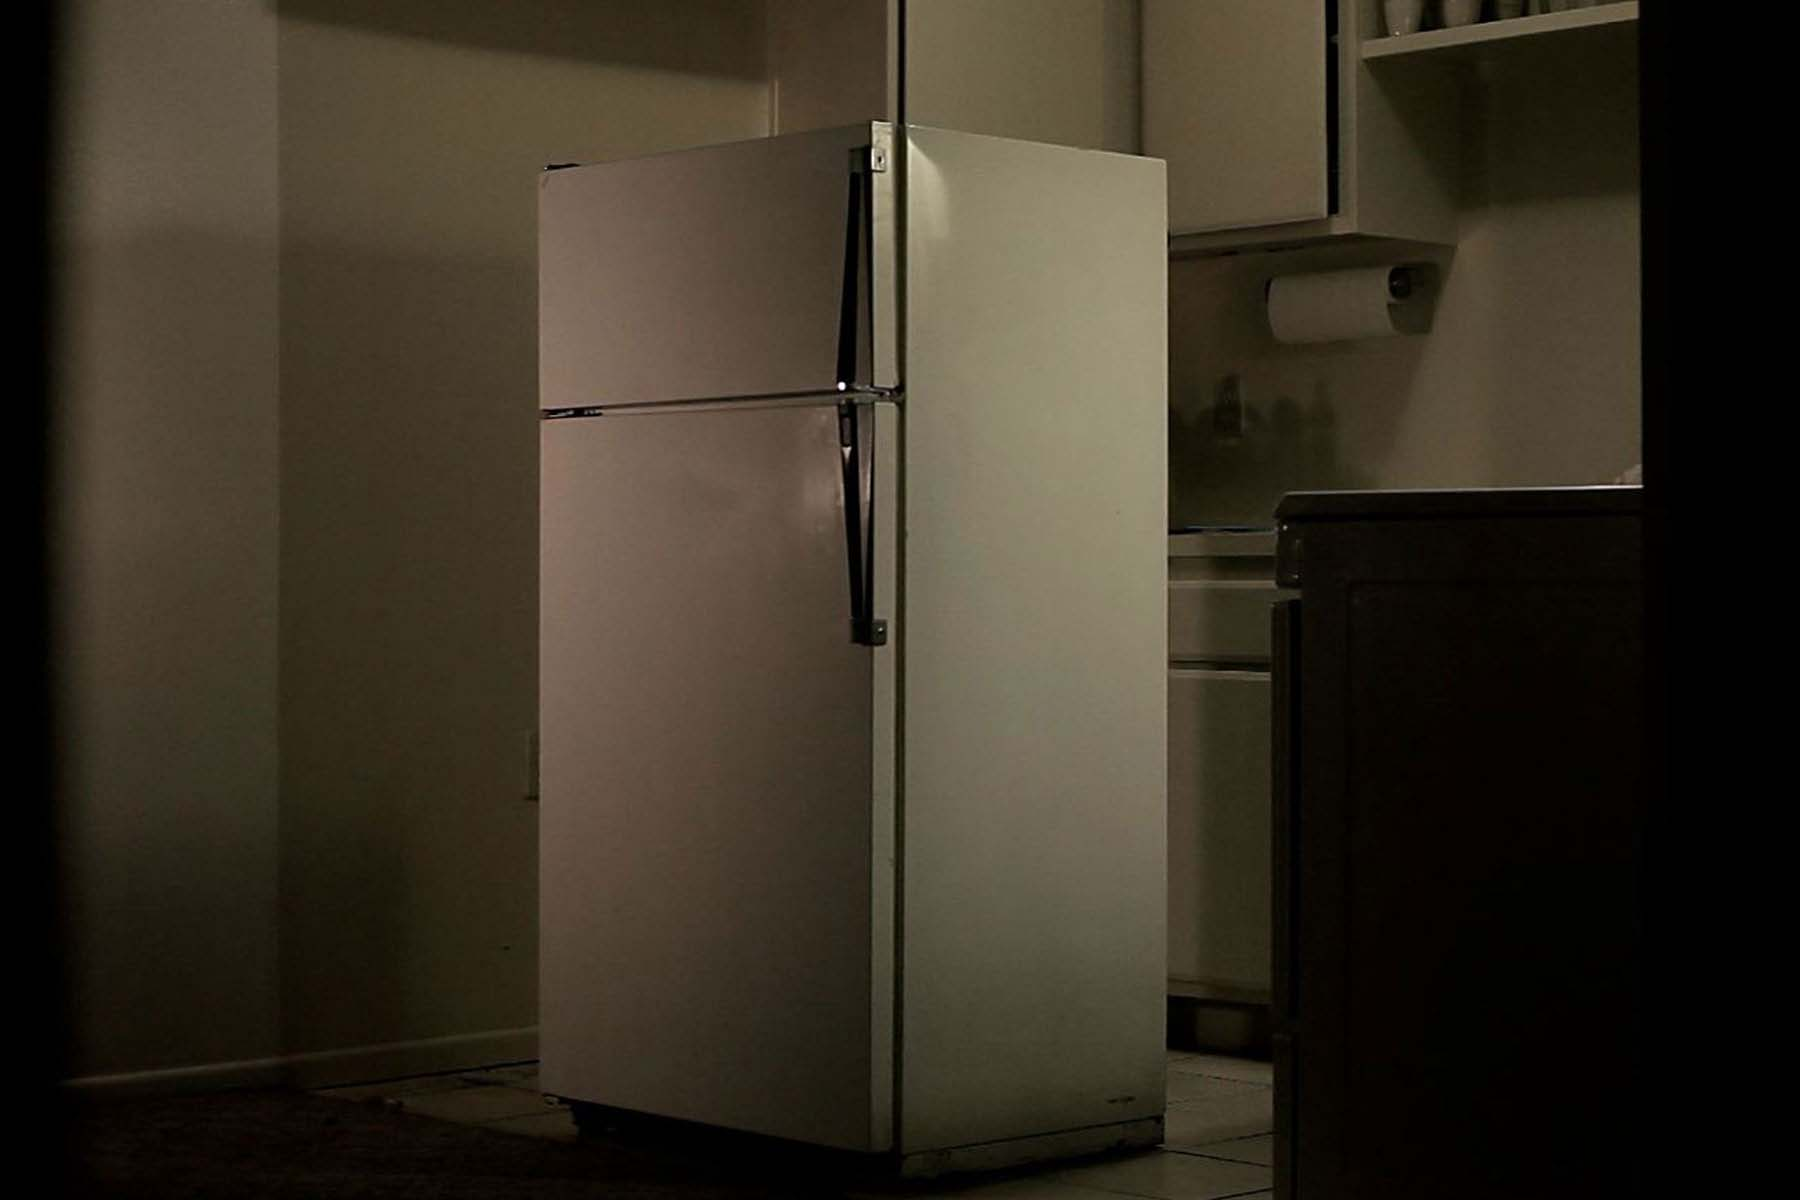 FRANCISCO JANES - Untitled (Fridge)